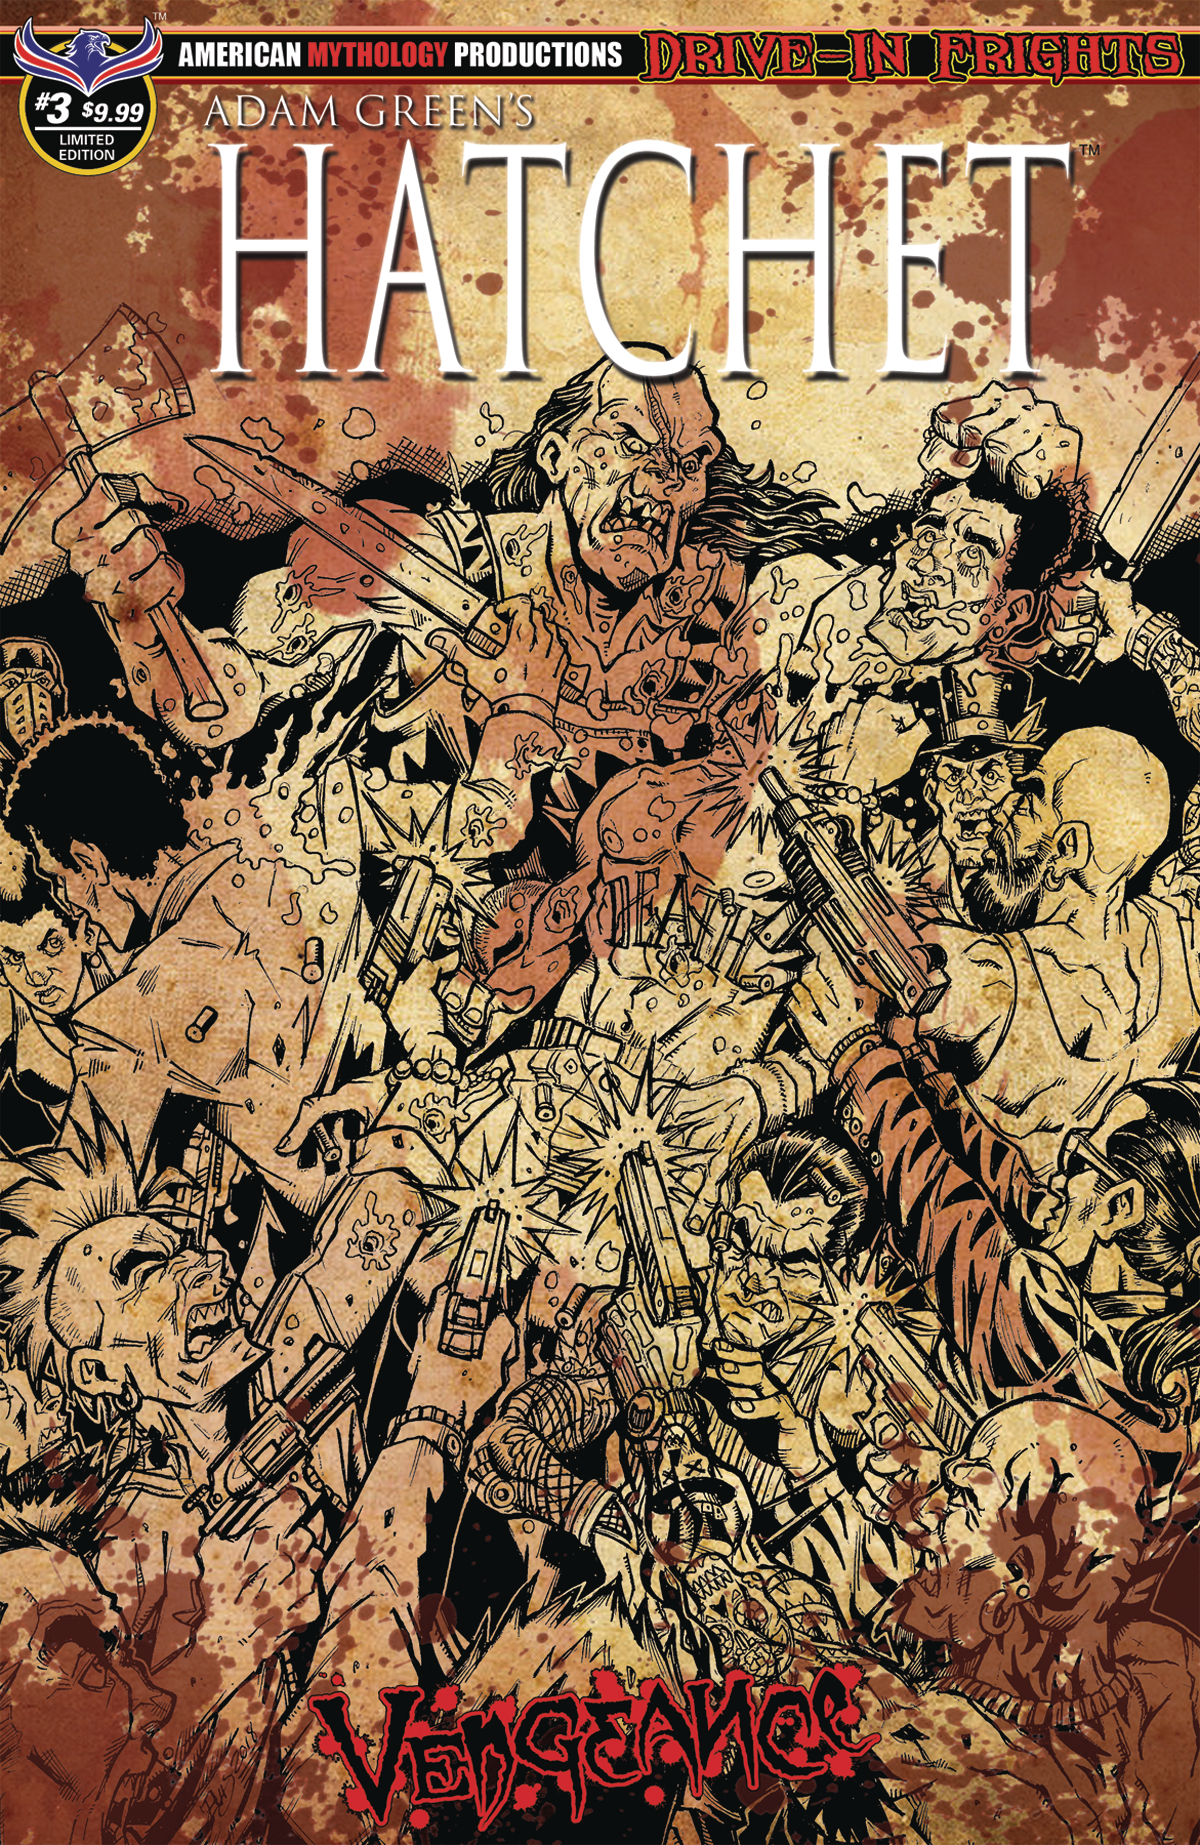 HATCHET VENGEANCE #3 BLOODY HORROR LTD ED CVR (MR)